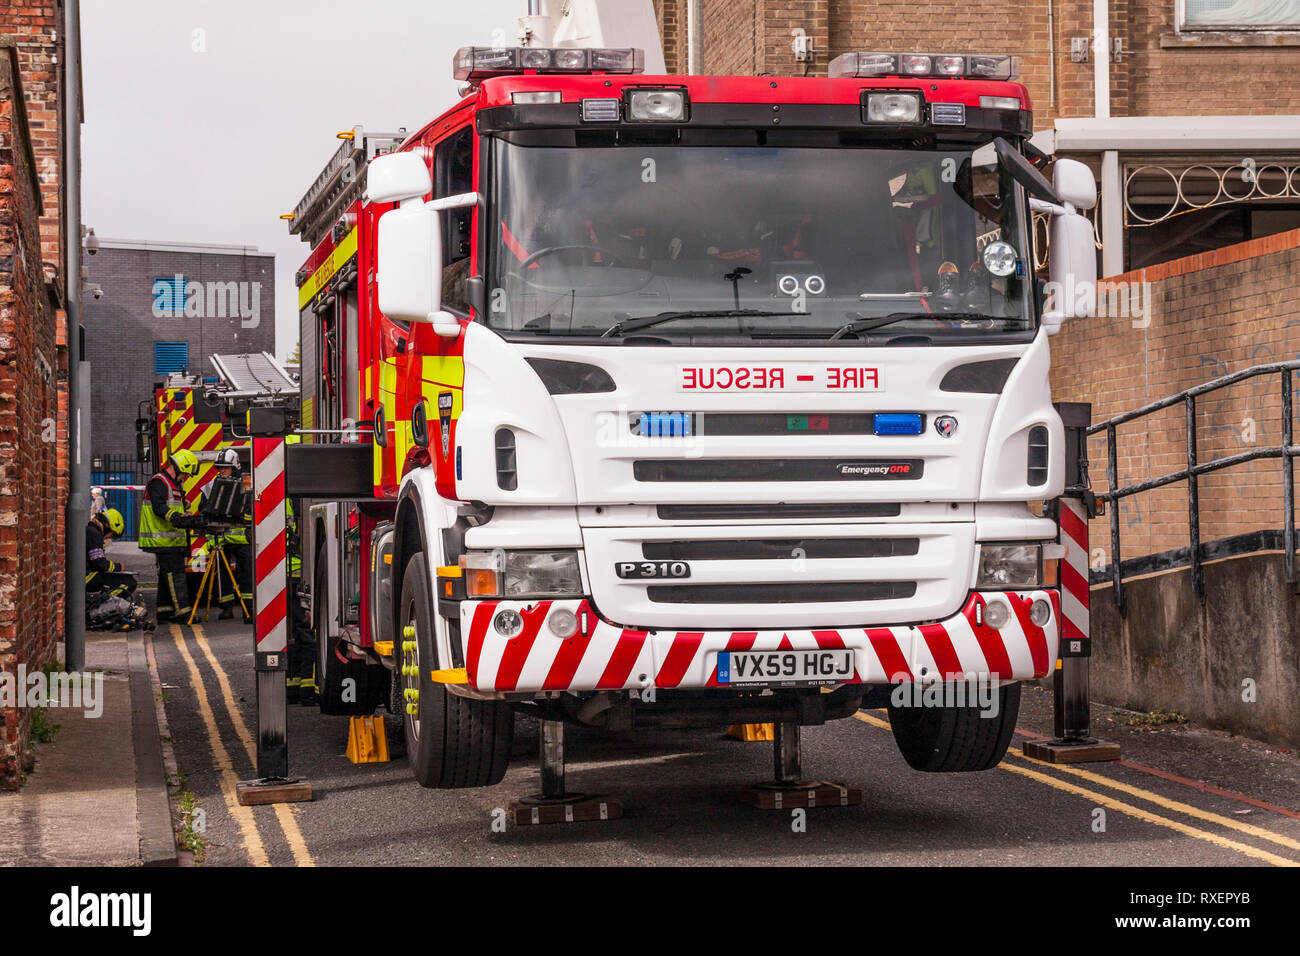 Cleveland Fire and Rescue staff using a Simon Snorkle ladder on a training exercise at high rise flat at Stockton-on-Tees, UK - Stock Image